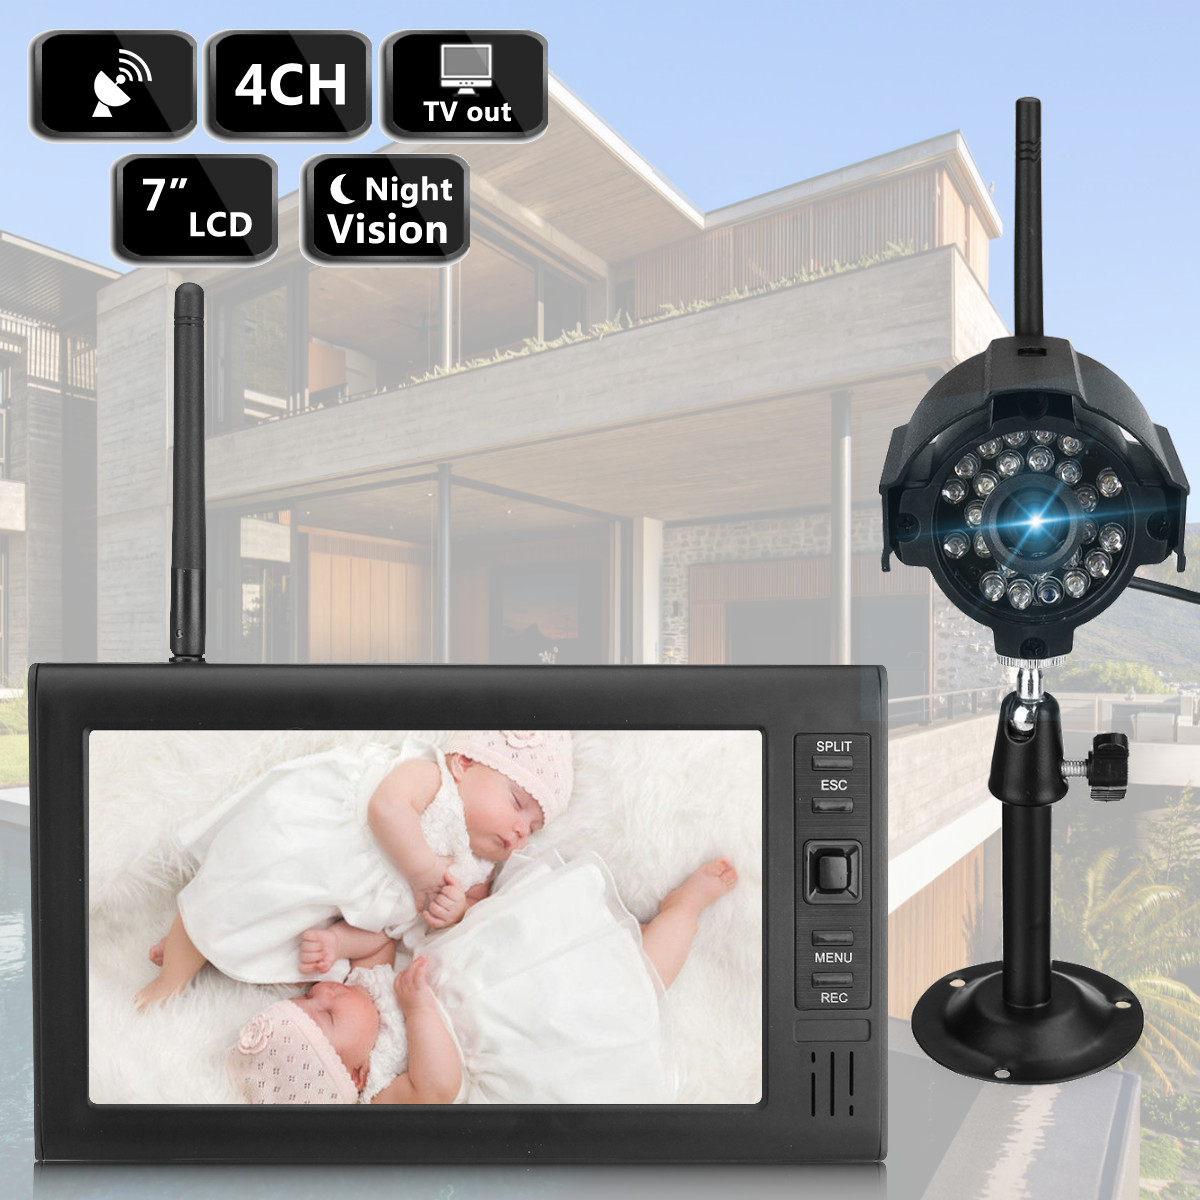 Wireless CCTV Camera Kit Home Security Surveillance System 7inch LCD Baby Monitor DVR Motion Detect UK Standard Plug